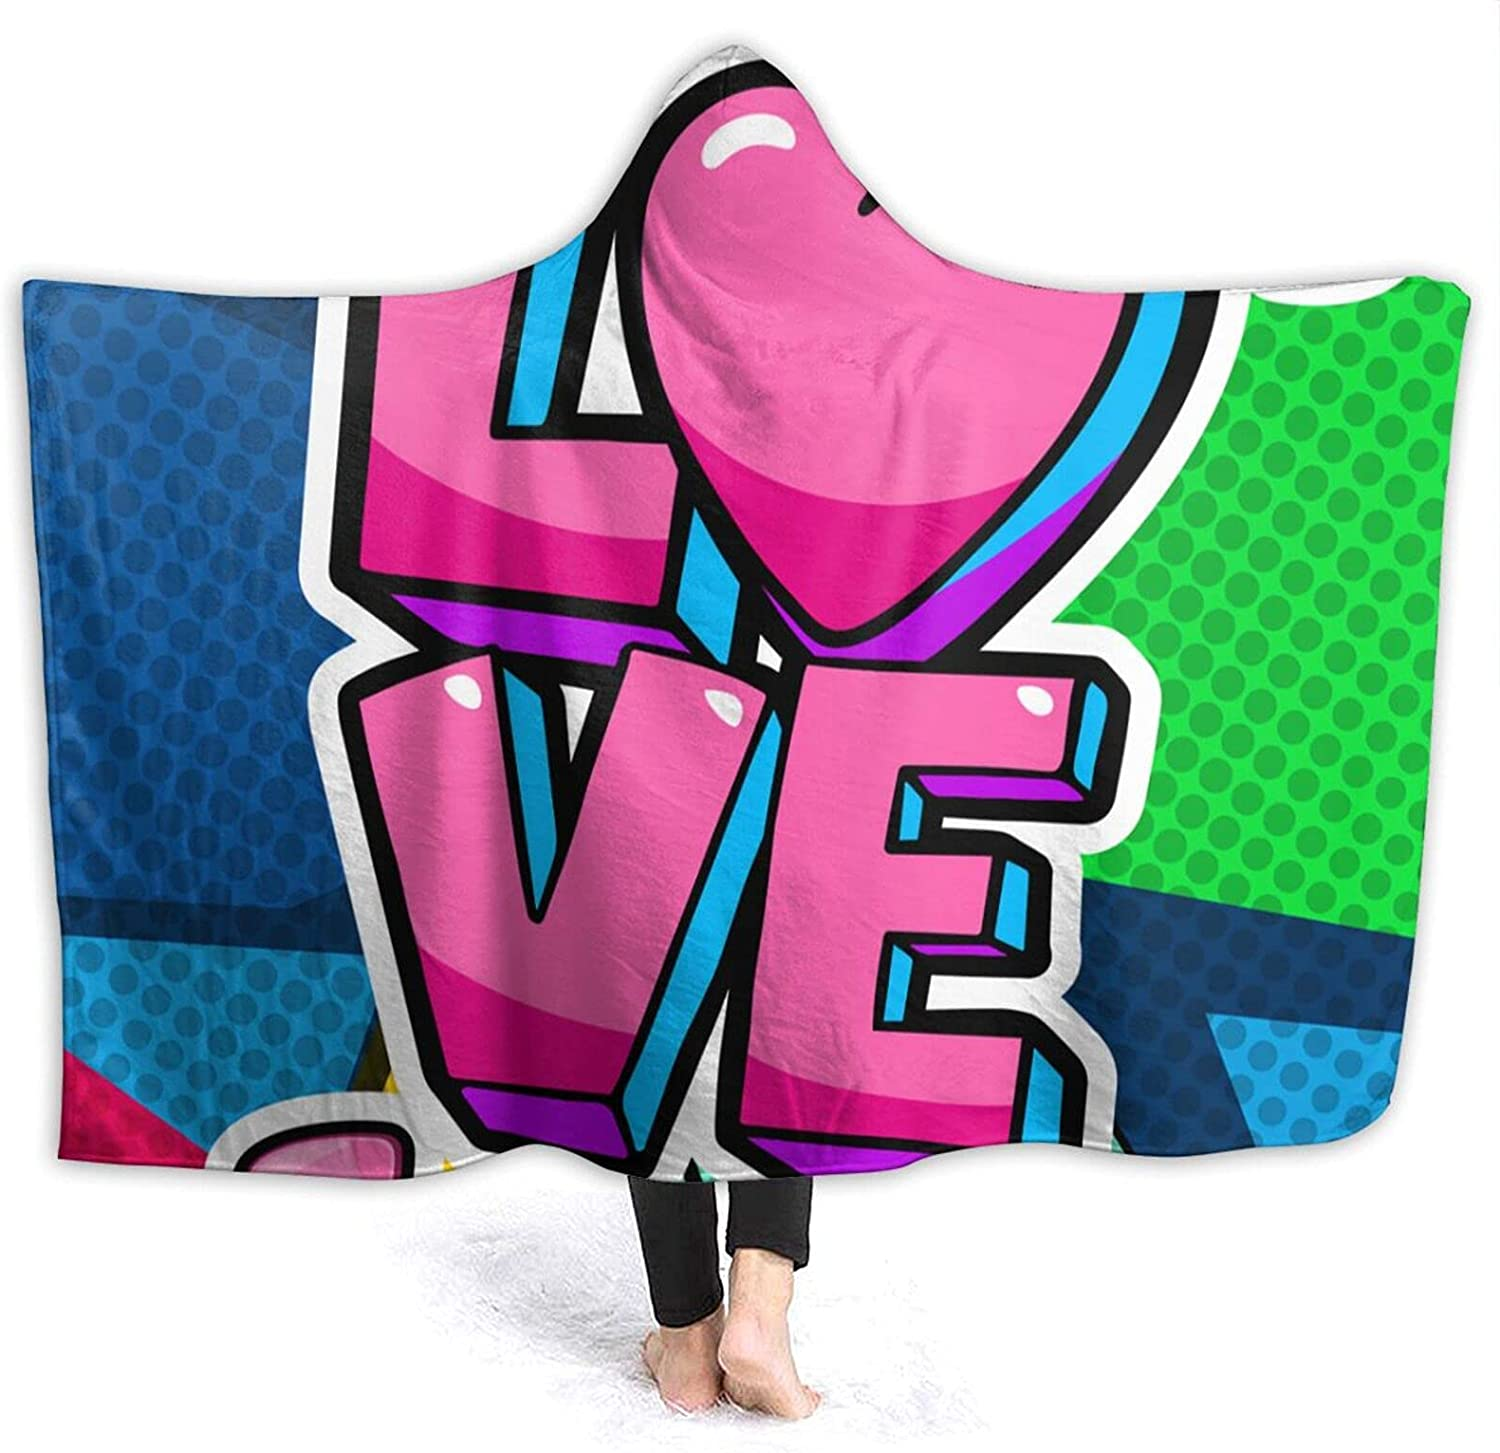 AUISS Wearable lowest Nashville-Davidson Mall price Blanket Love Heart Hooded Cape S Cloak Throw Wrap